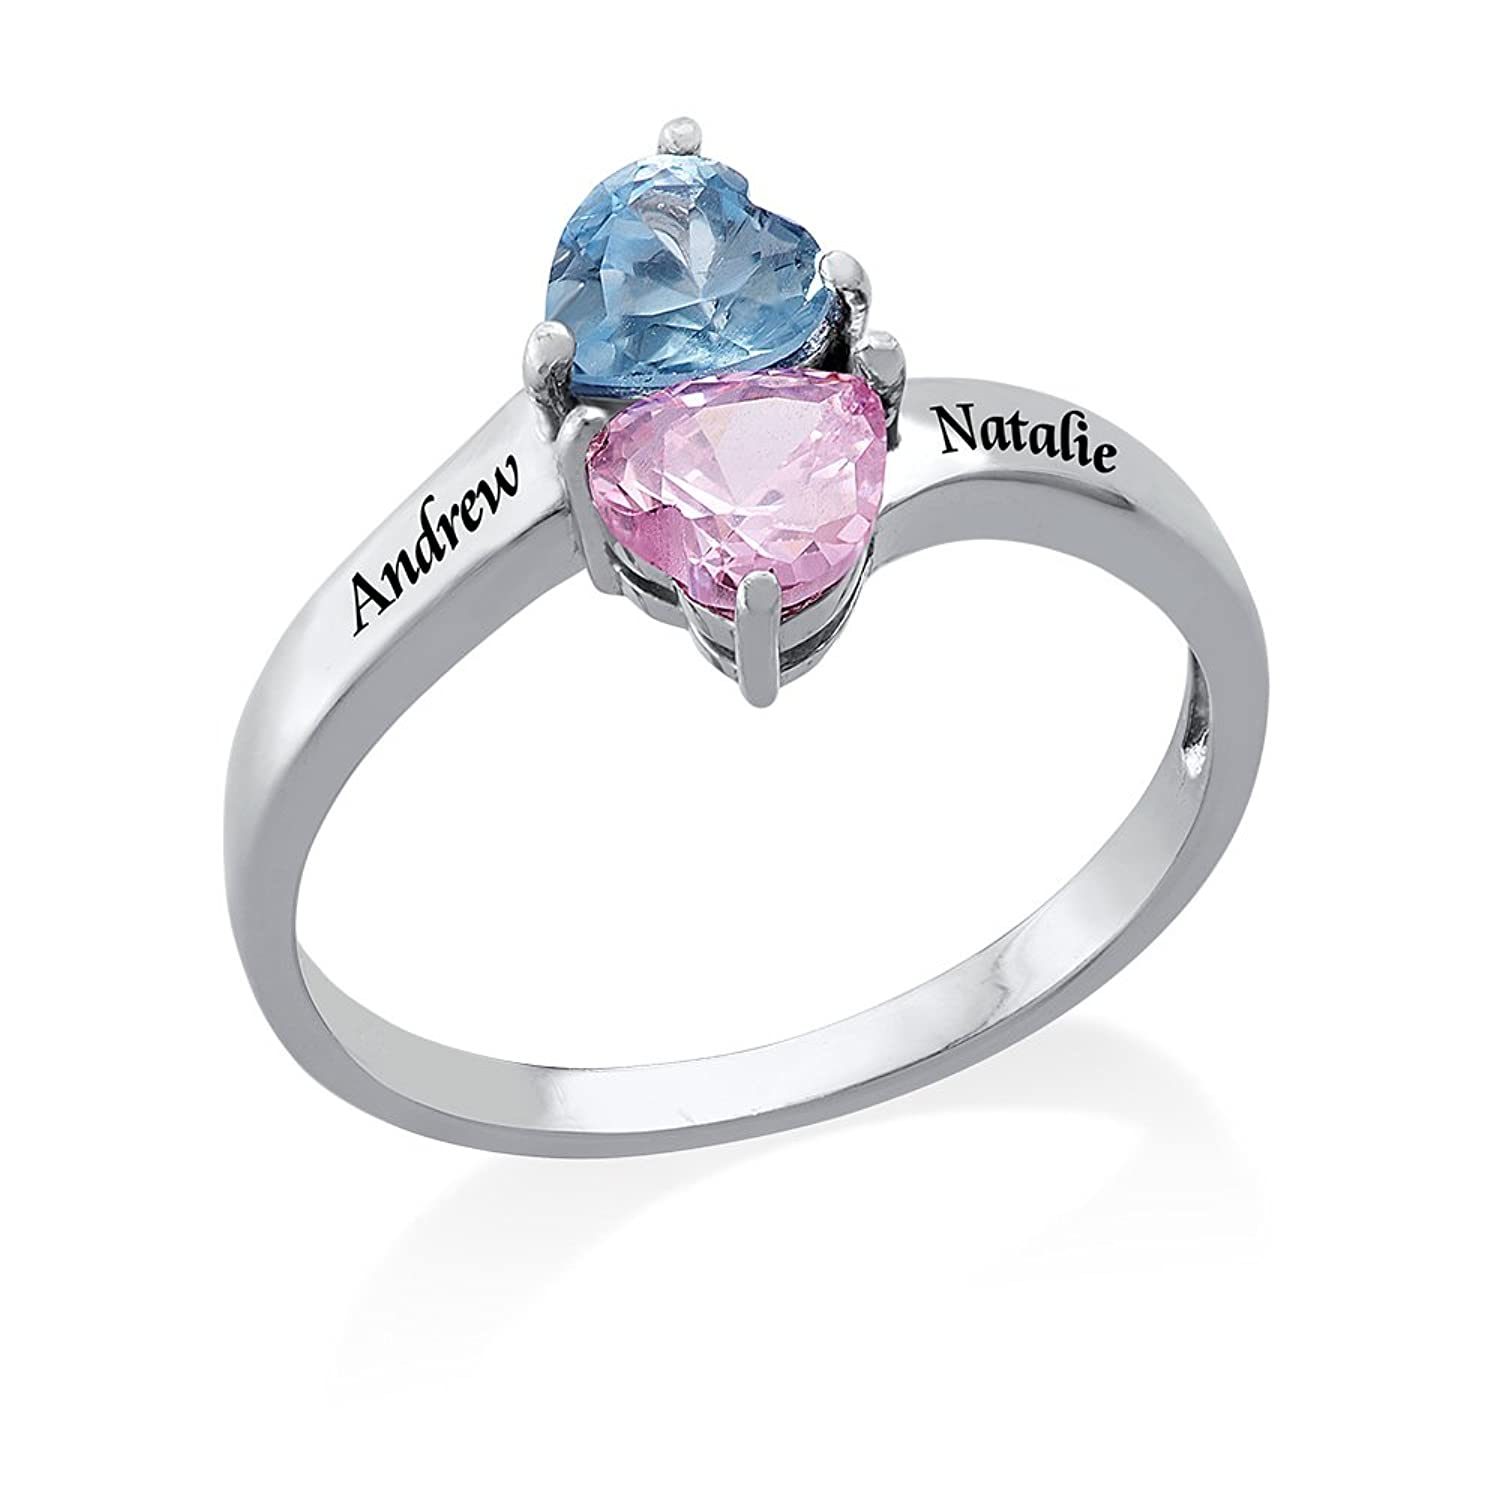 Amazon.com: Personalized Heart Birthstone Ring - Special Gift ...